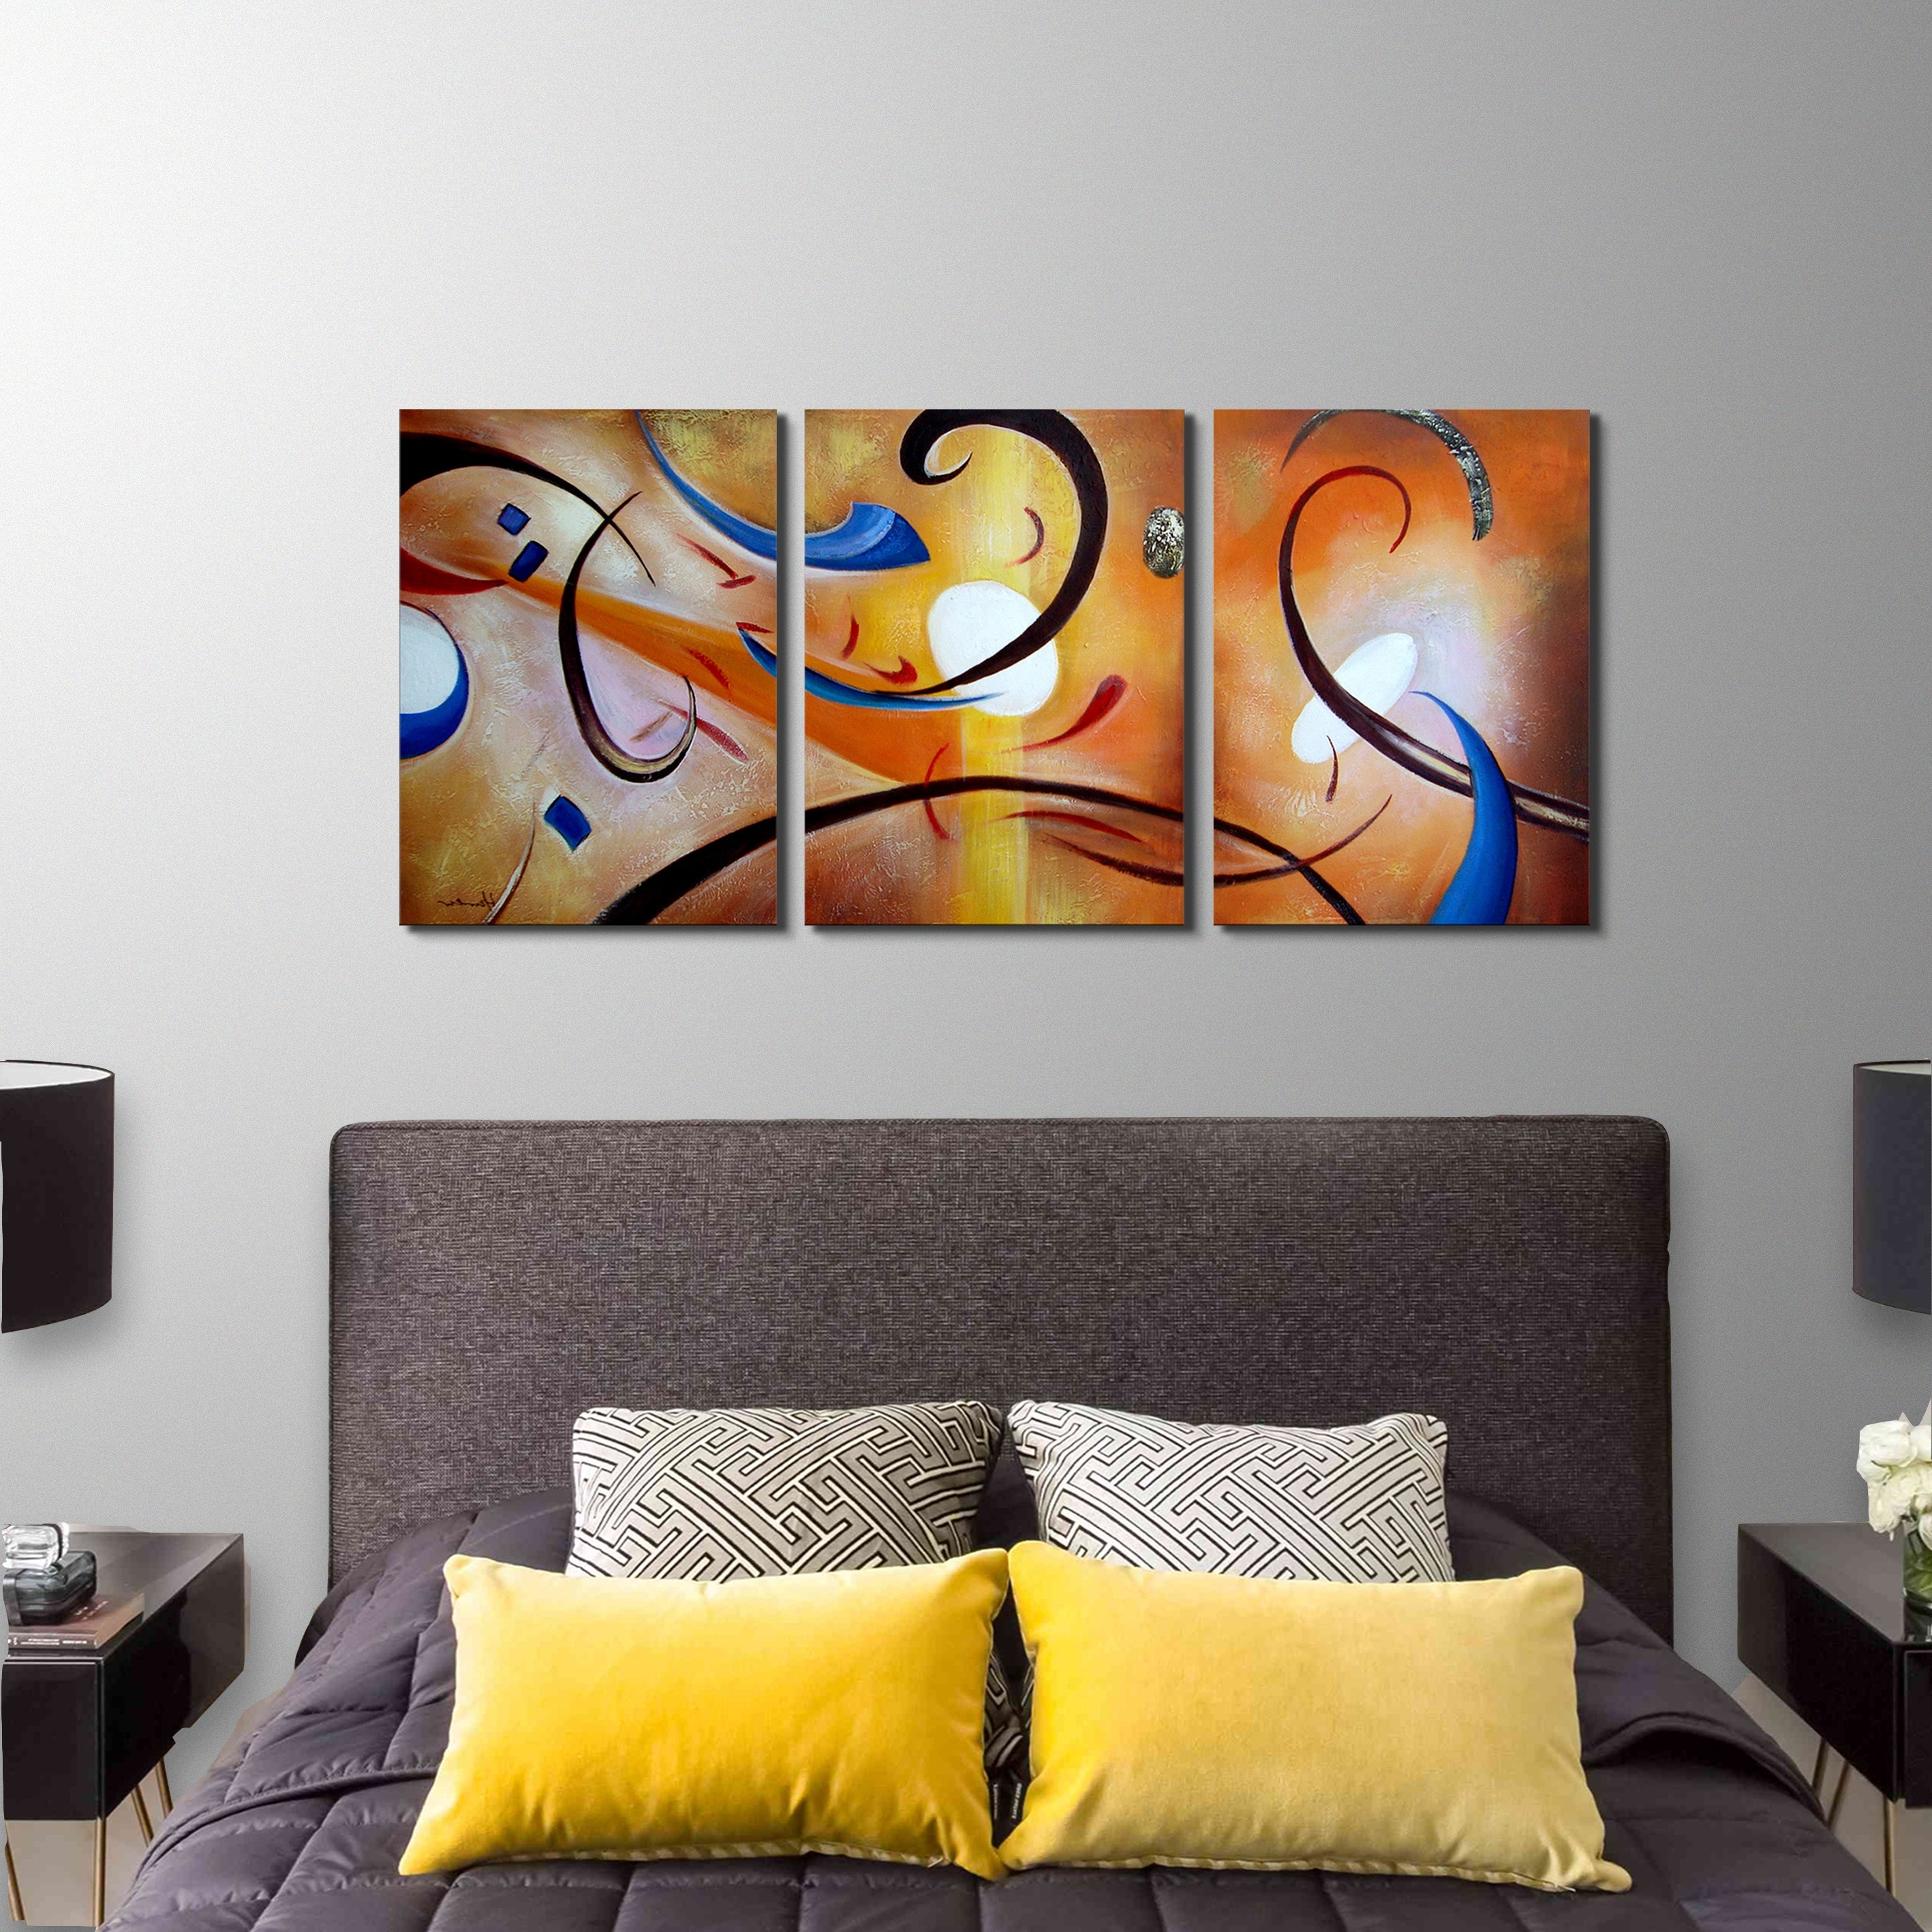 Overstock Wall Art Intended For Most Current Shop Clay Alder Home Happiness Abstract' Hand Painted Gallery (View 6 of 20)